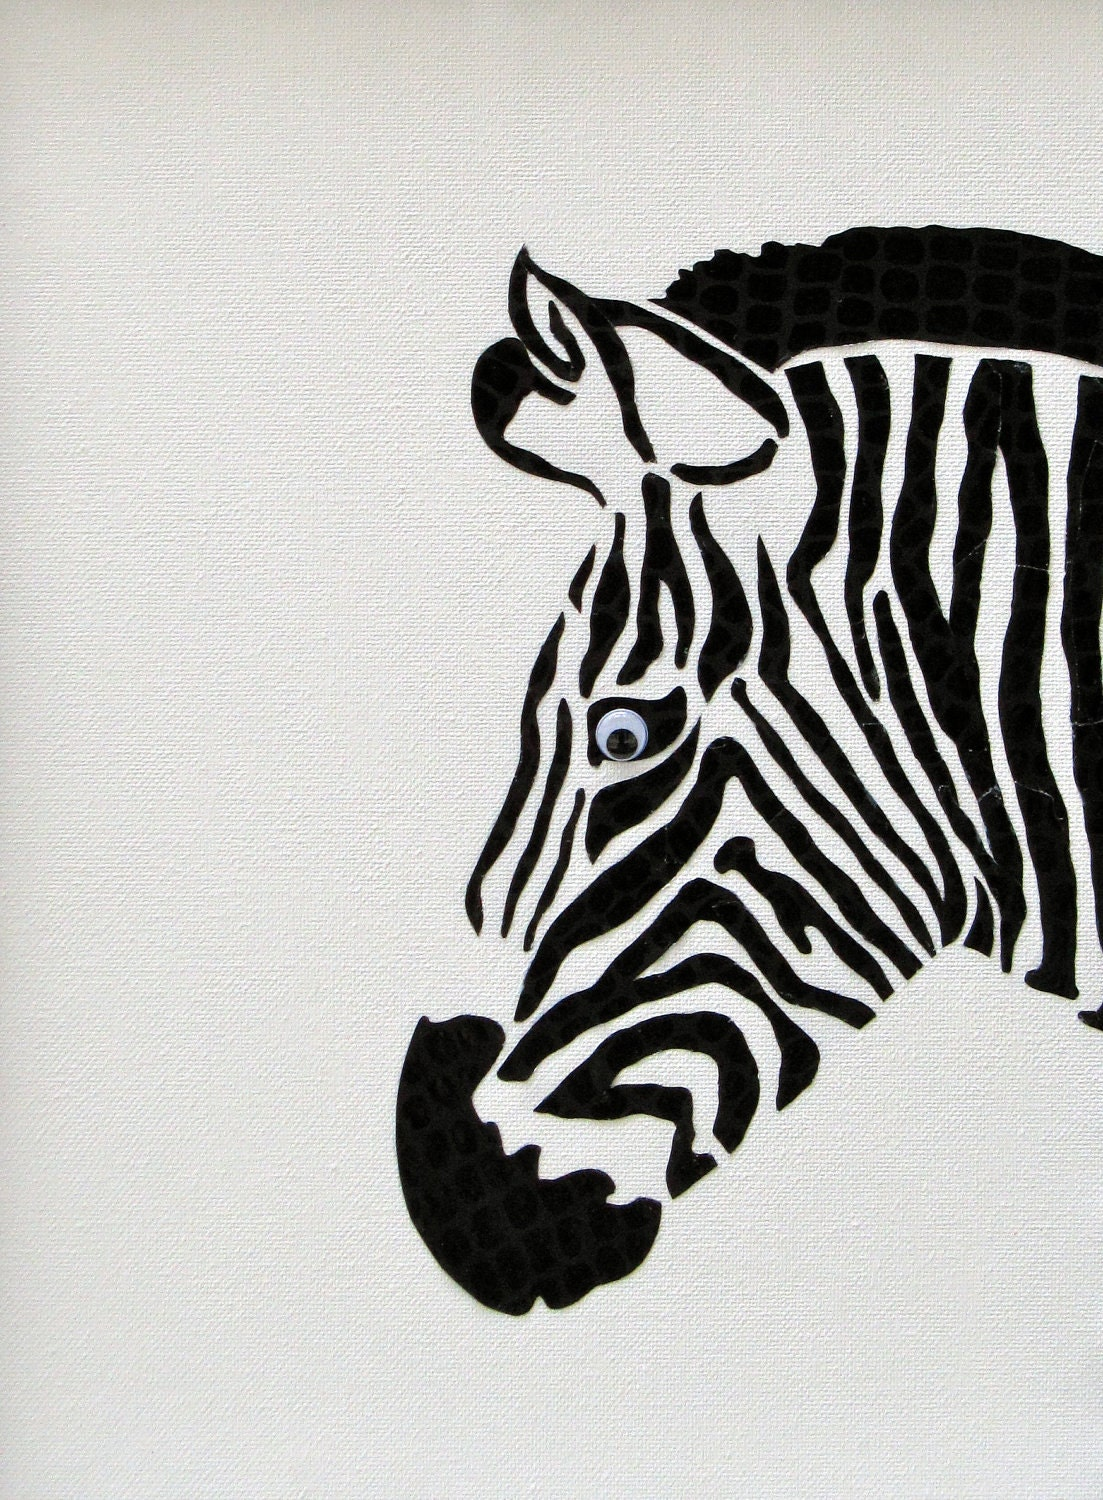 Black and White Beauty - Original Handmade Acrylic Paint and Paper Painting on Canvas - PaperAndPaintRocks